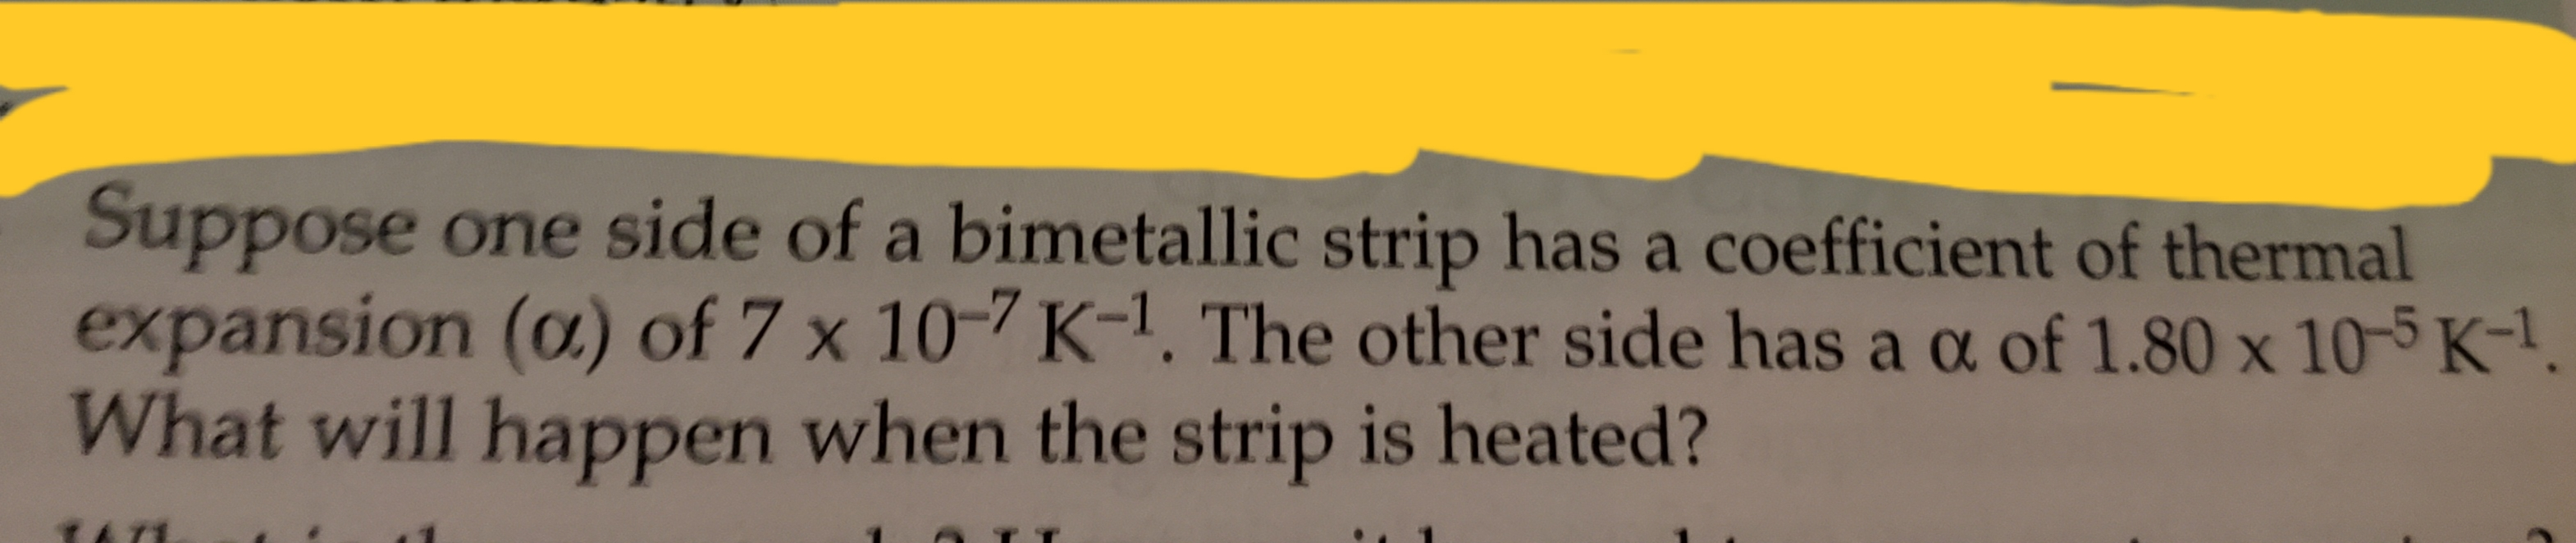 Suppose one side of a bimetallic strip has a coefficient of thermal expansion (oa.) of 7 x 10-7 K-1. The other side has a a of 1.80 x 10-5 K-1. What will happen when the strip is heated?